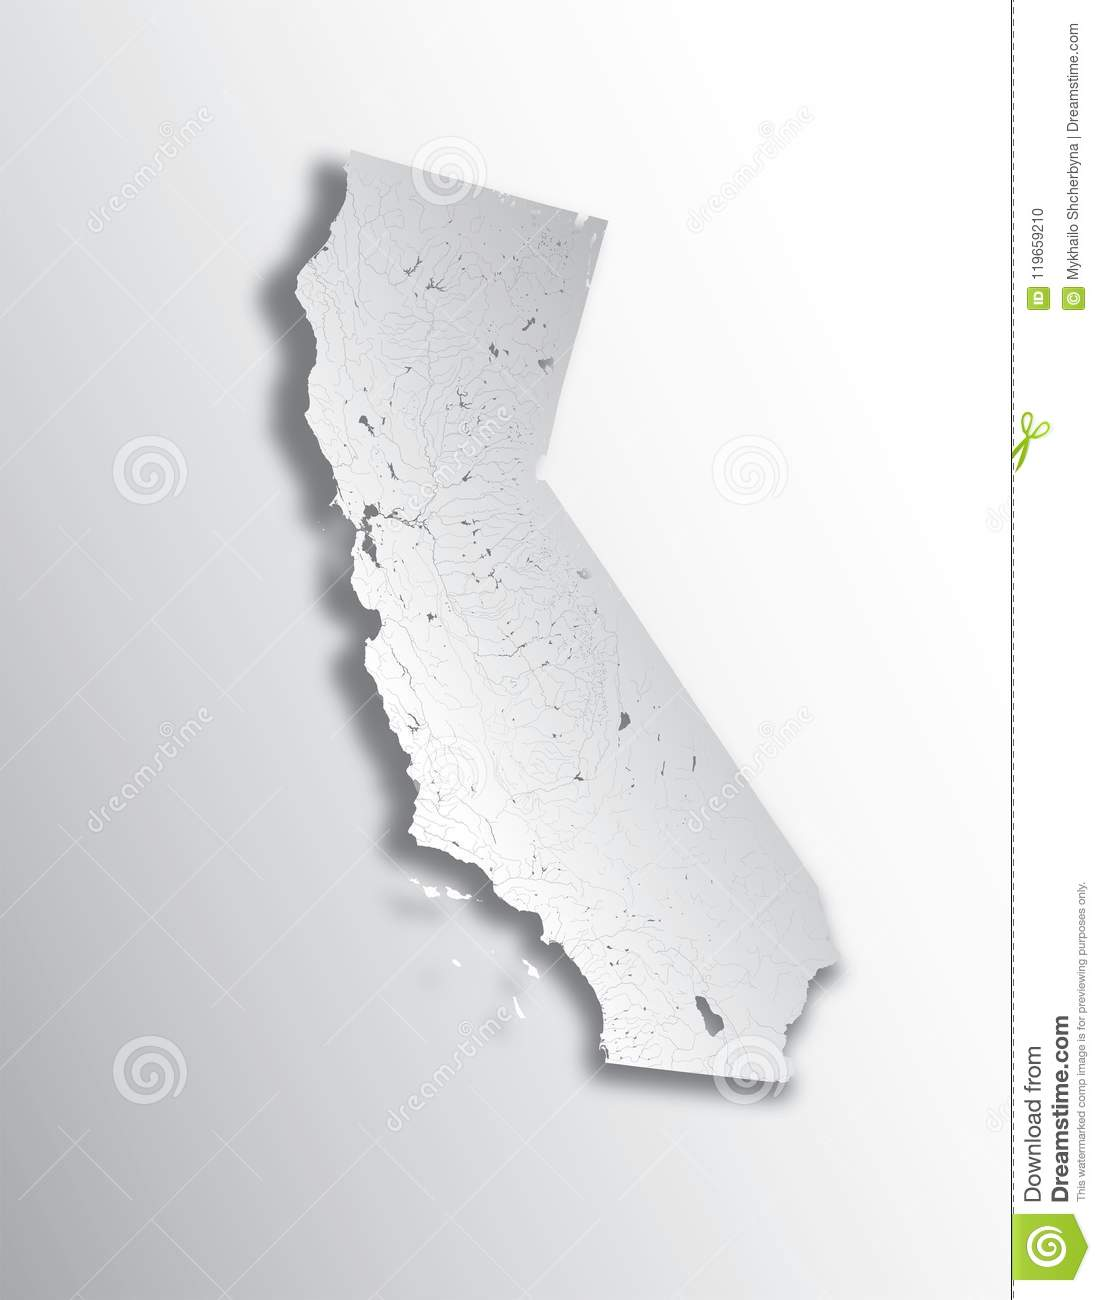 California Map Lakes.Map Of California With Lakes And Rivers Stock Vector Illustration